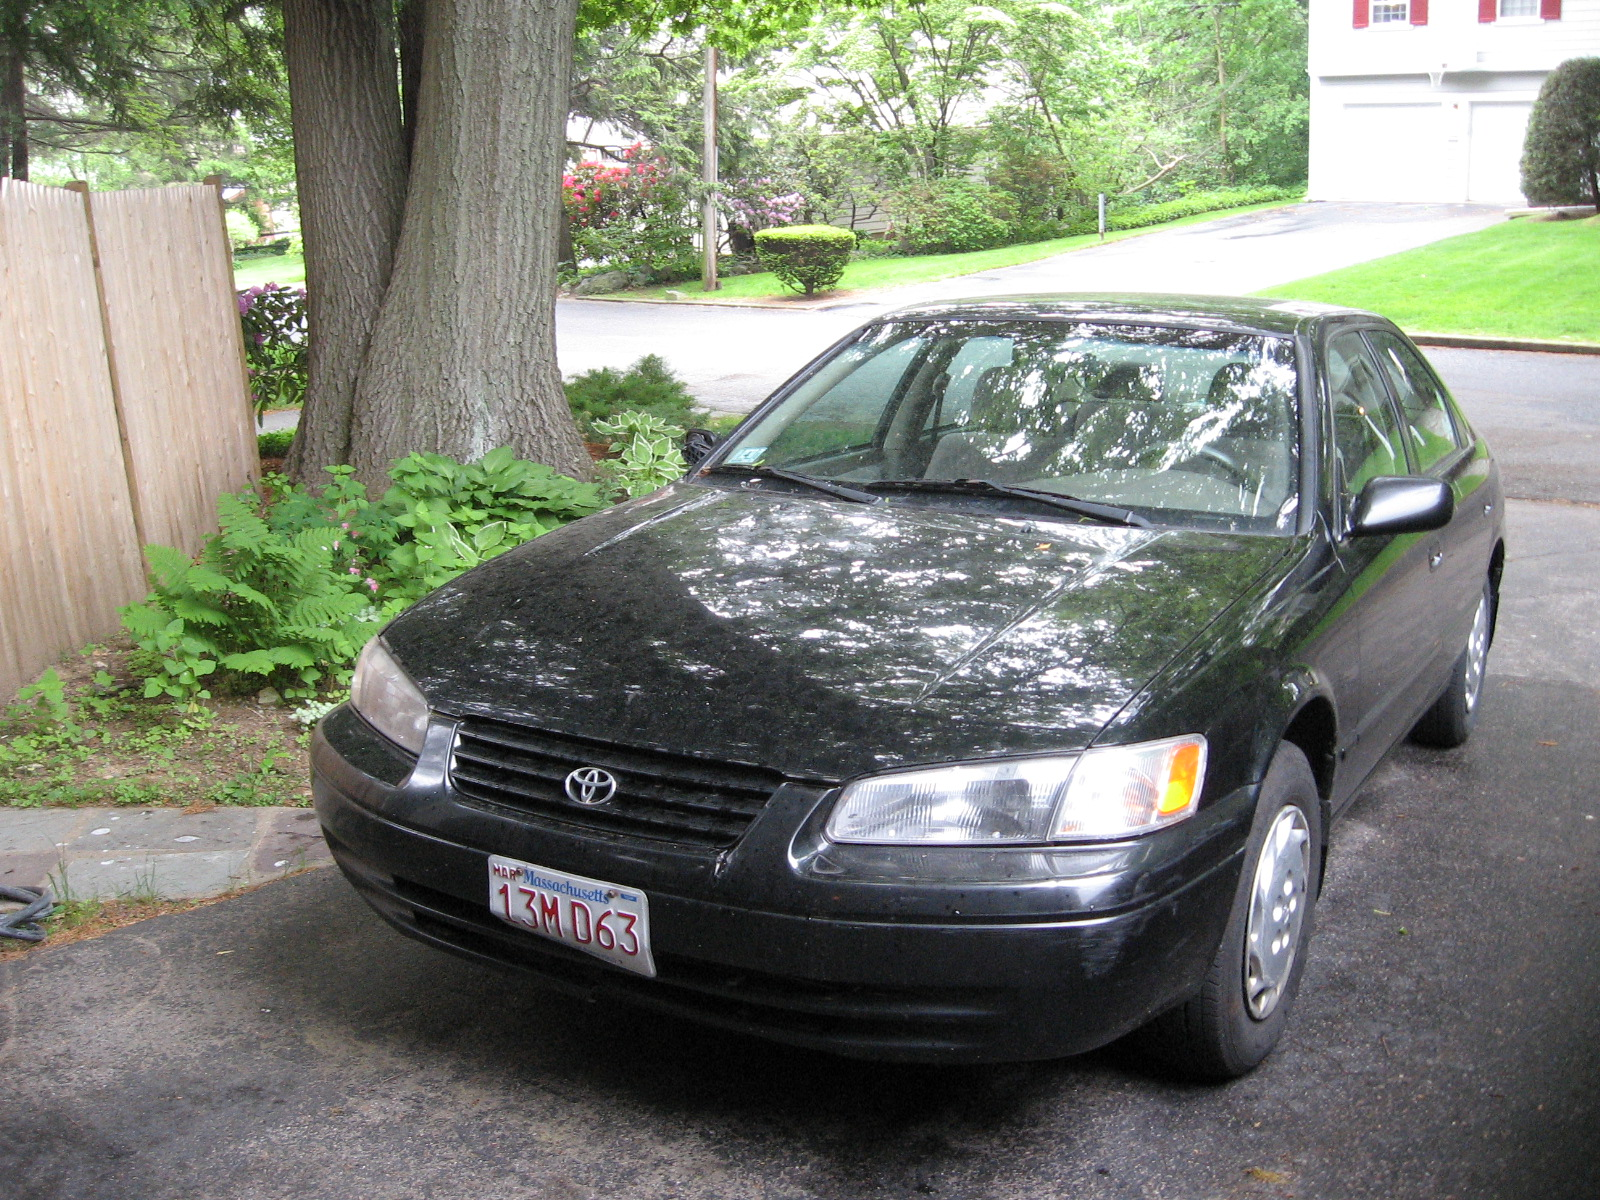 1997 Toyota Camry XLE, My (1997 Toyota Camry 4 Dr XLE Sedan) in my driveway in Arlington,MA.  Picture Taken: 05-31-08, exterior